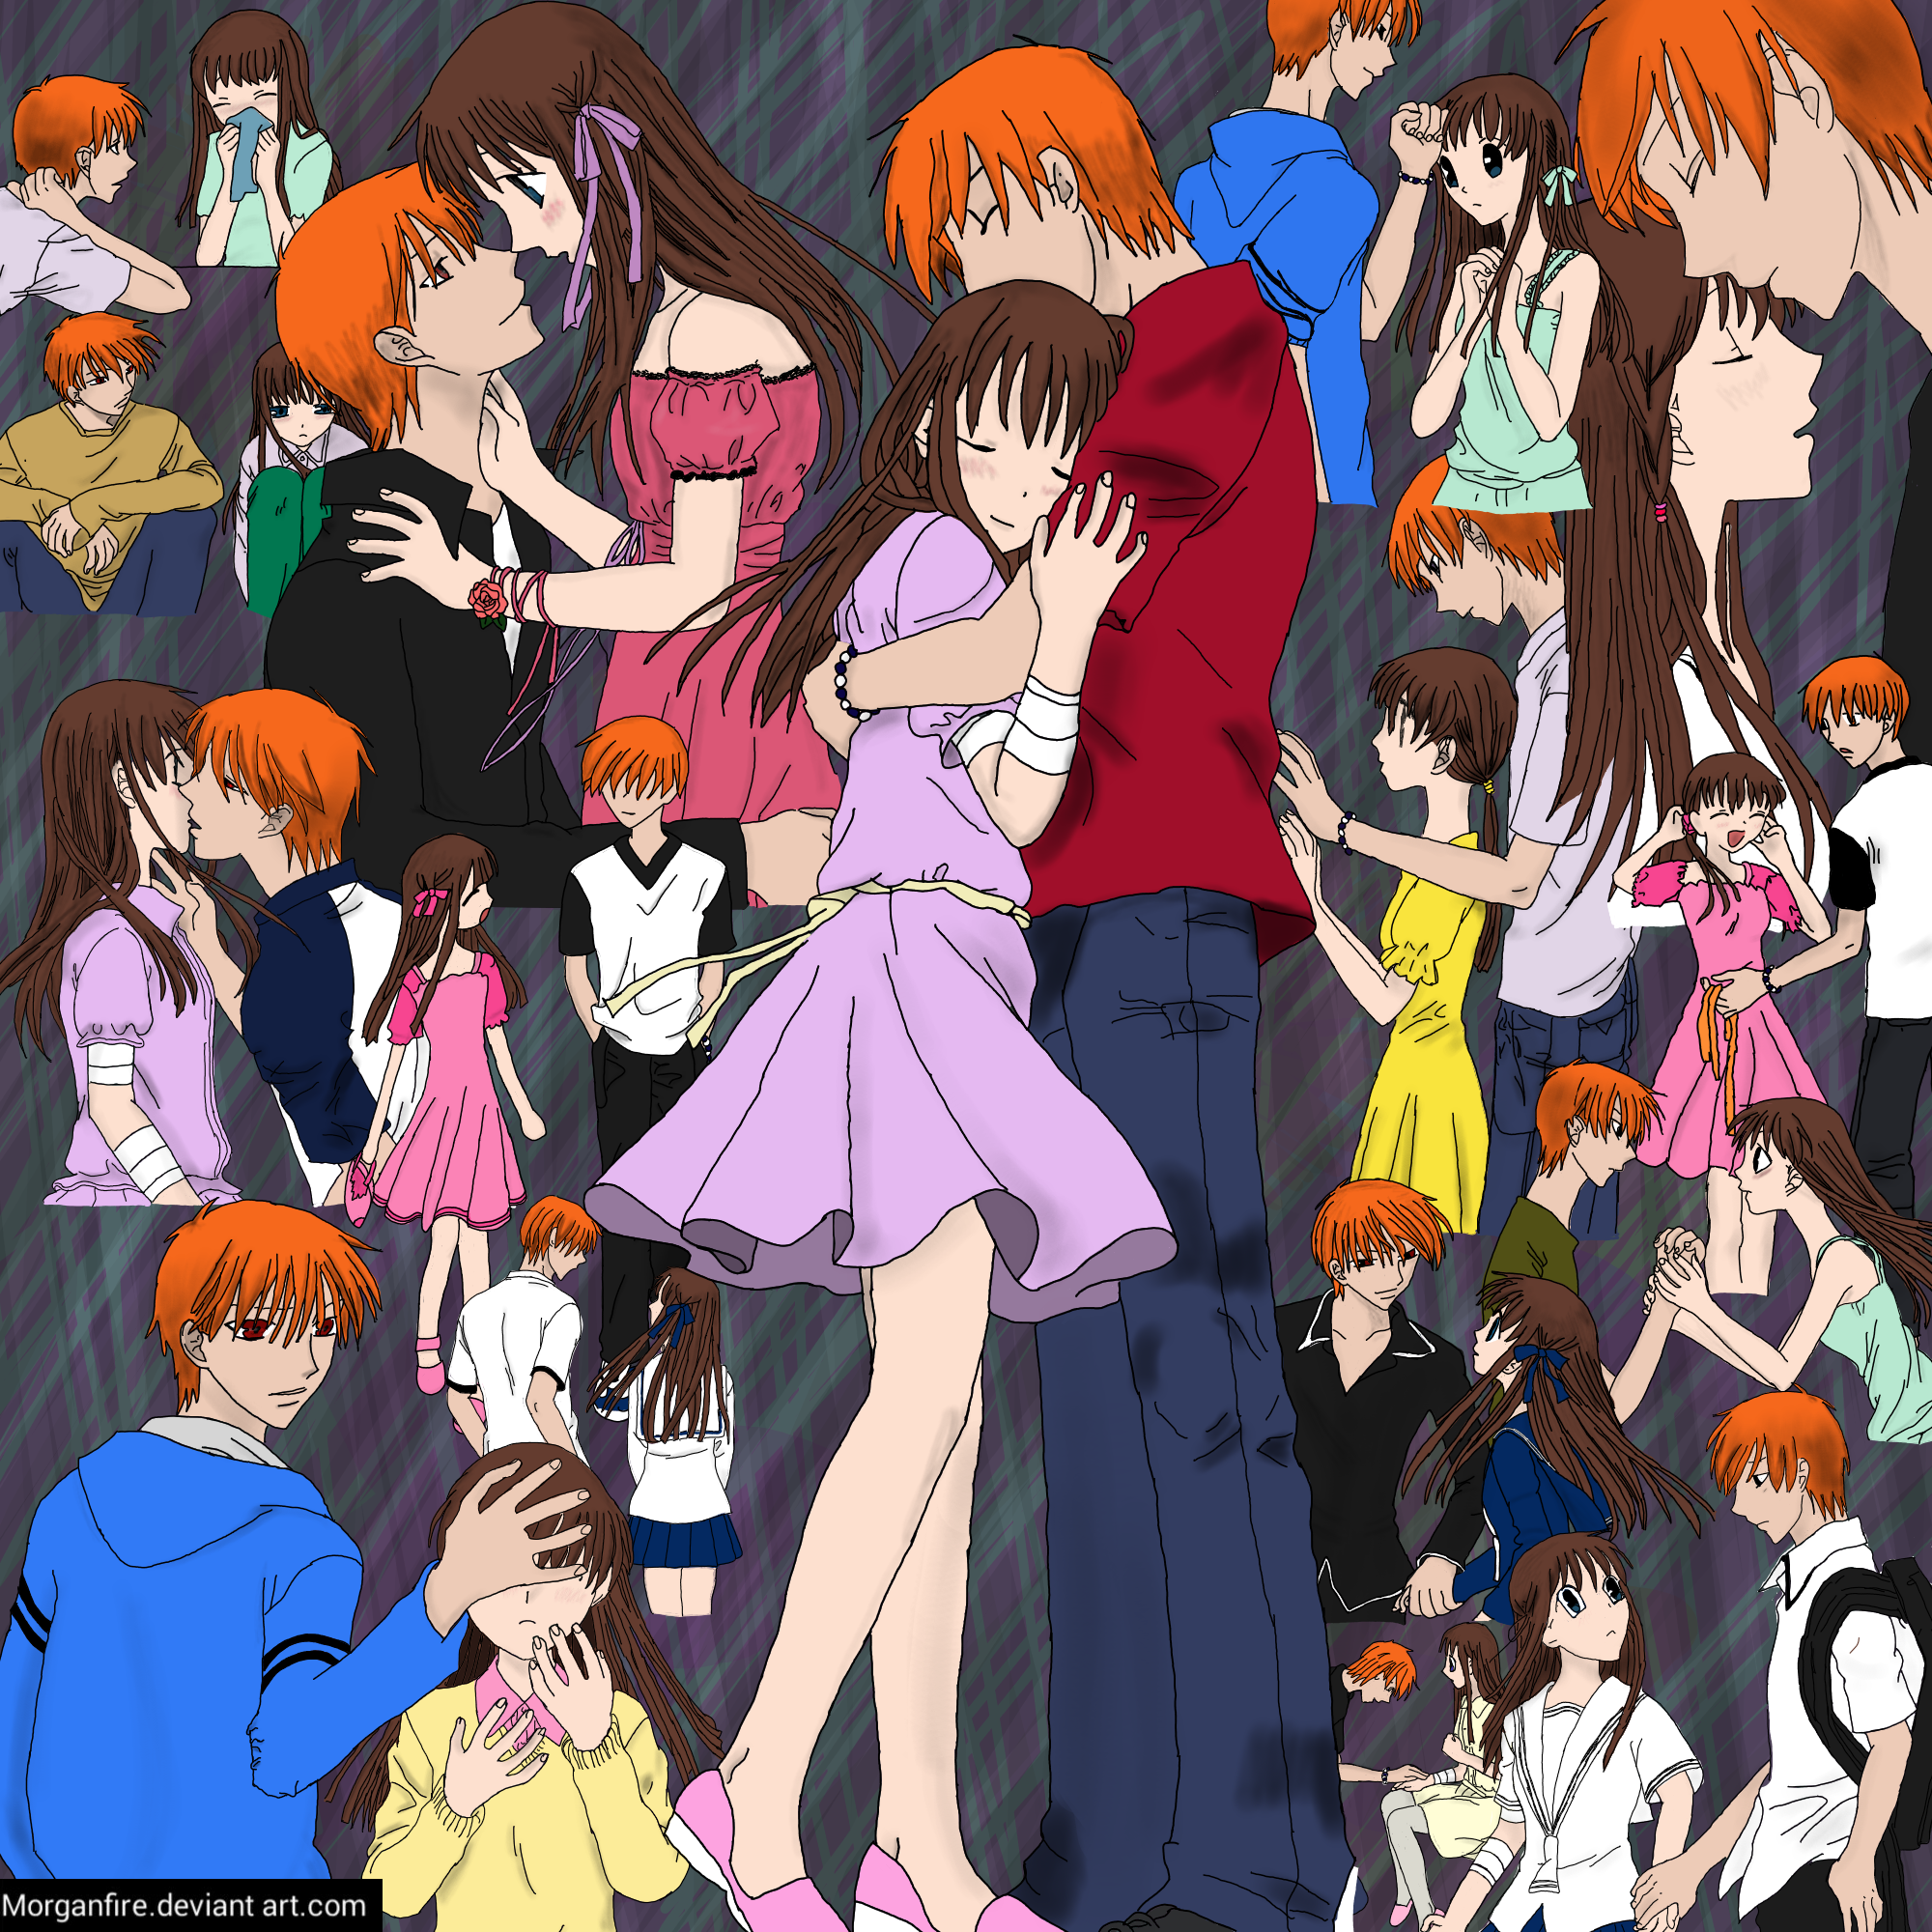 Fruits Basket Where To Watch: Kyo X Tohru By Morganfire On DeviantArt